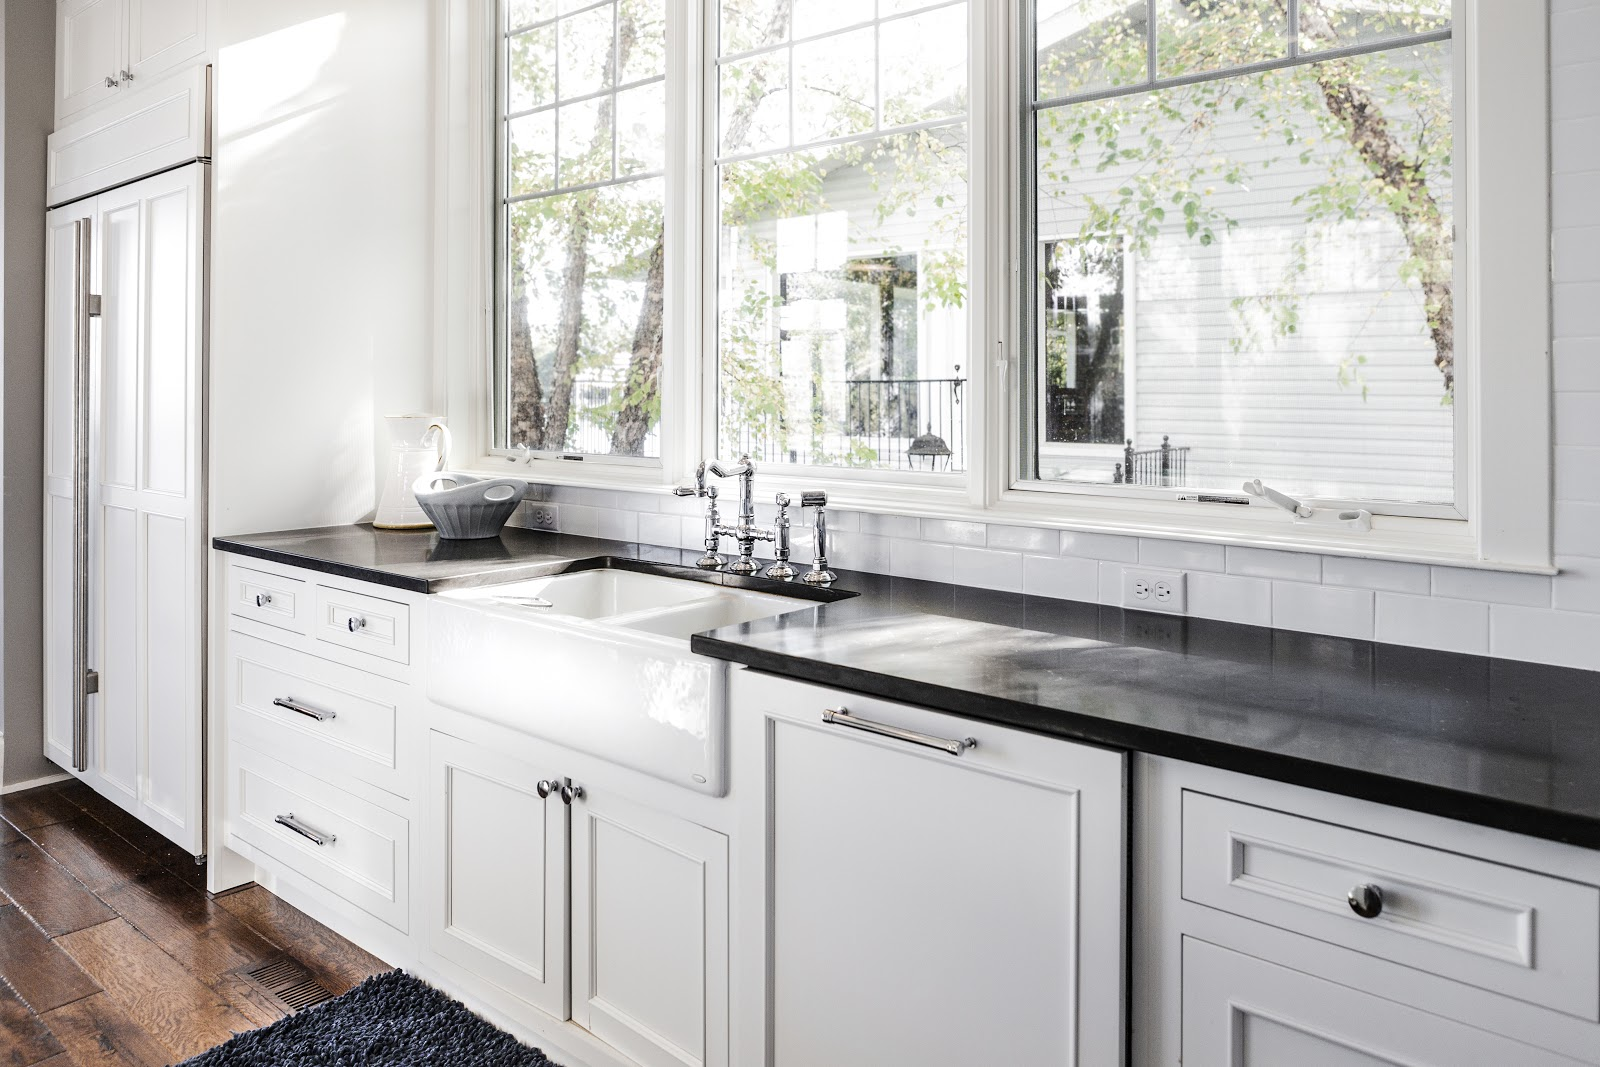 White Kitchen with black countertops, flooded by natural light from three large windows above an apron sink.